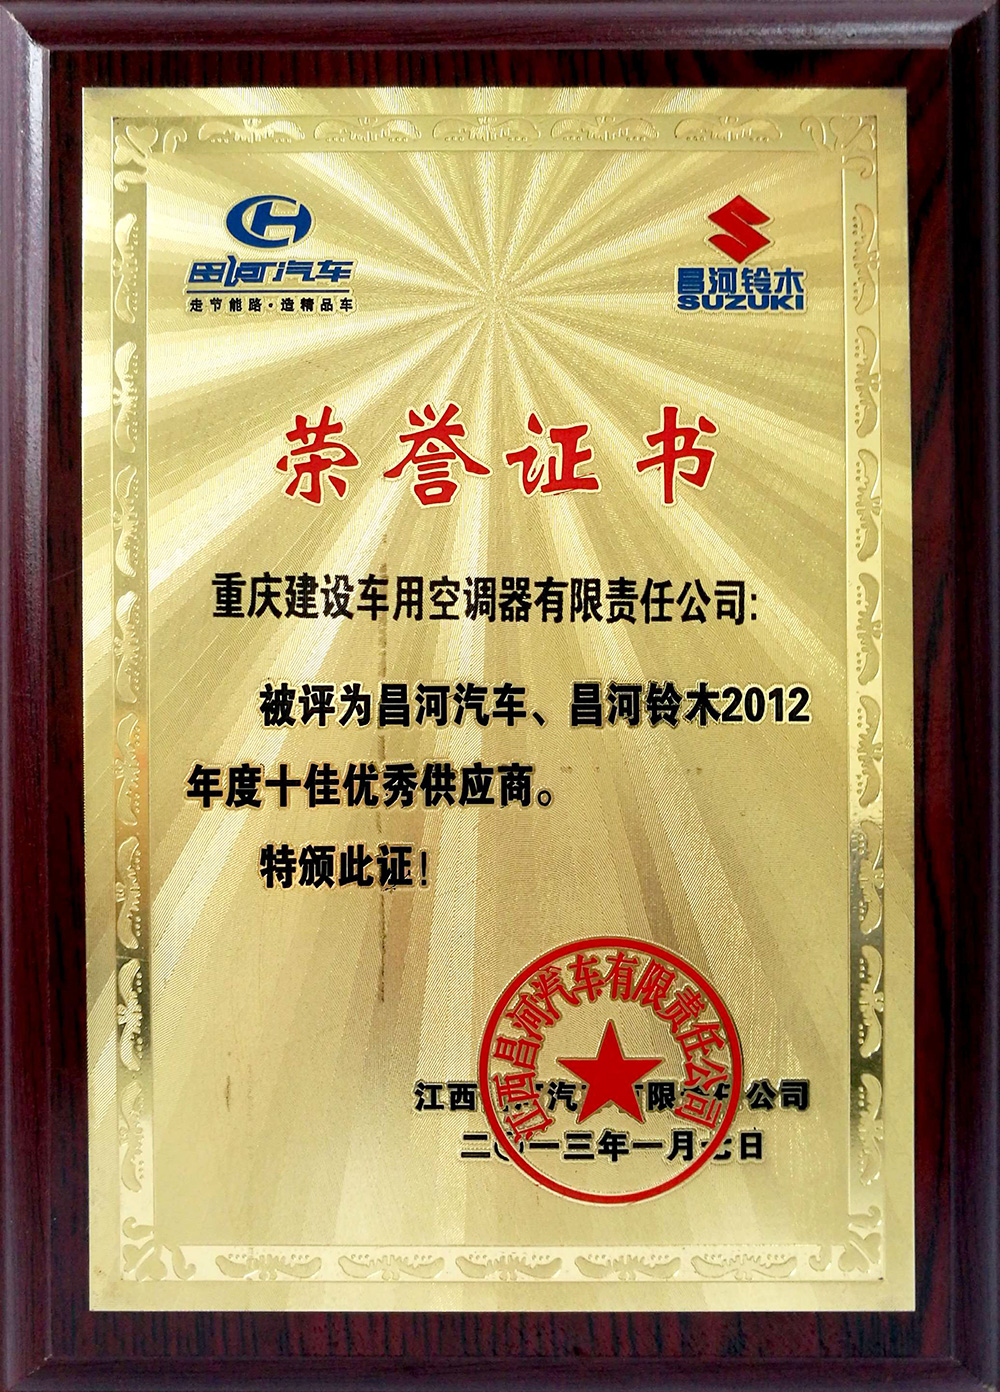 2012 Top 10 Outstanding Suppliers of Changhe Automobile and Changhe Suzuki Automobile